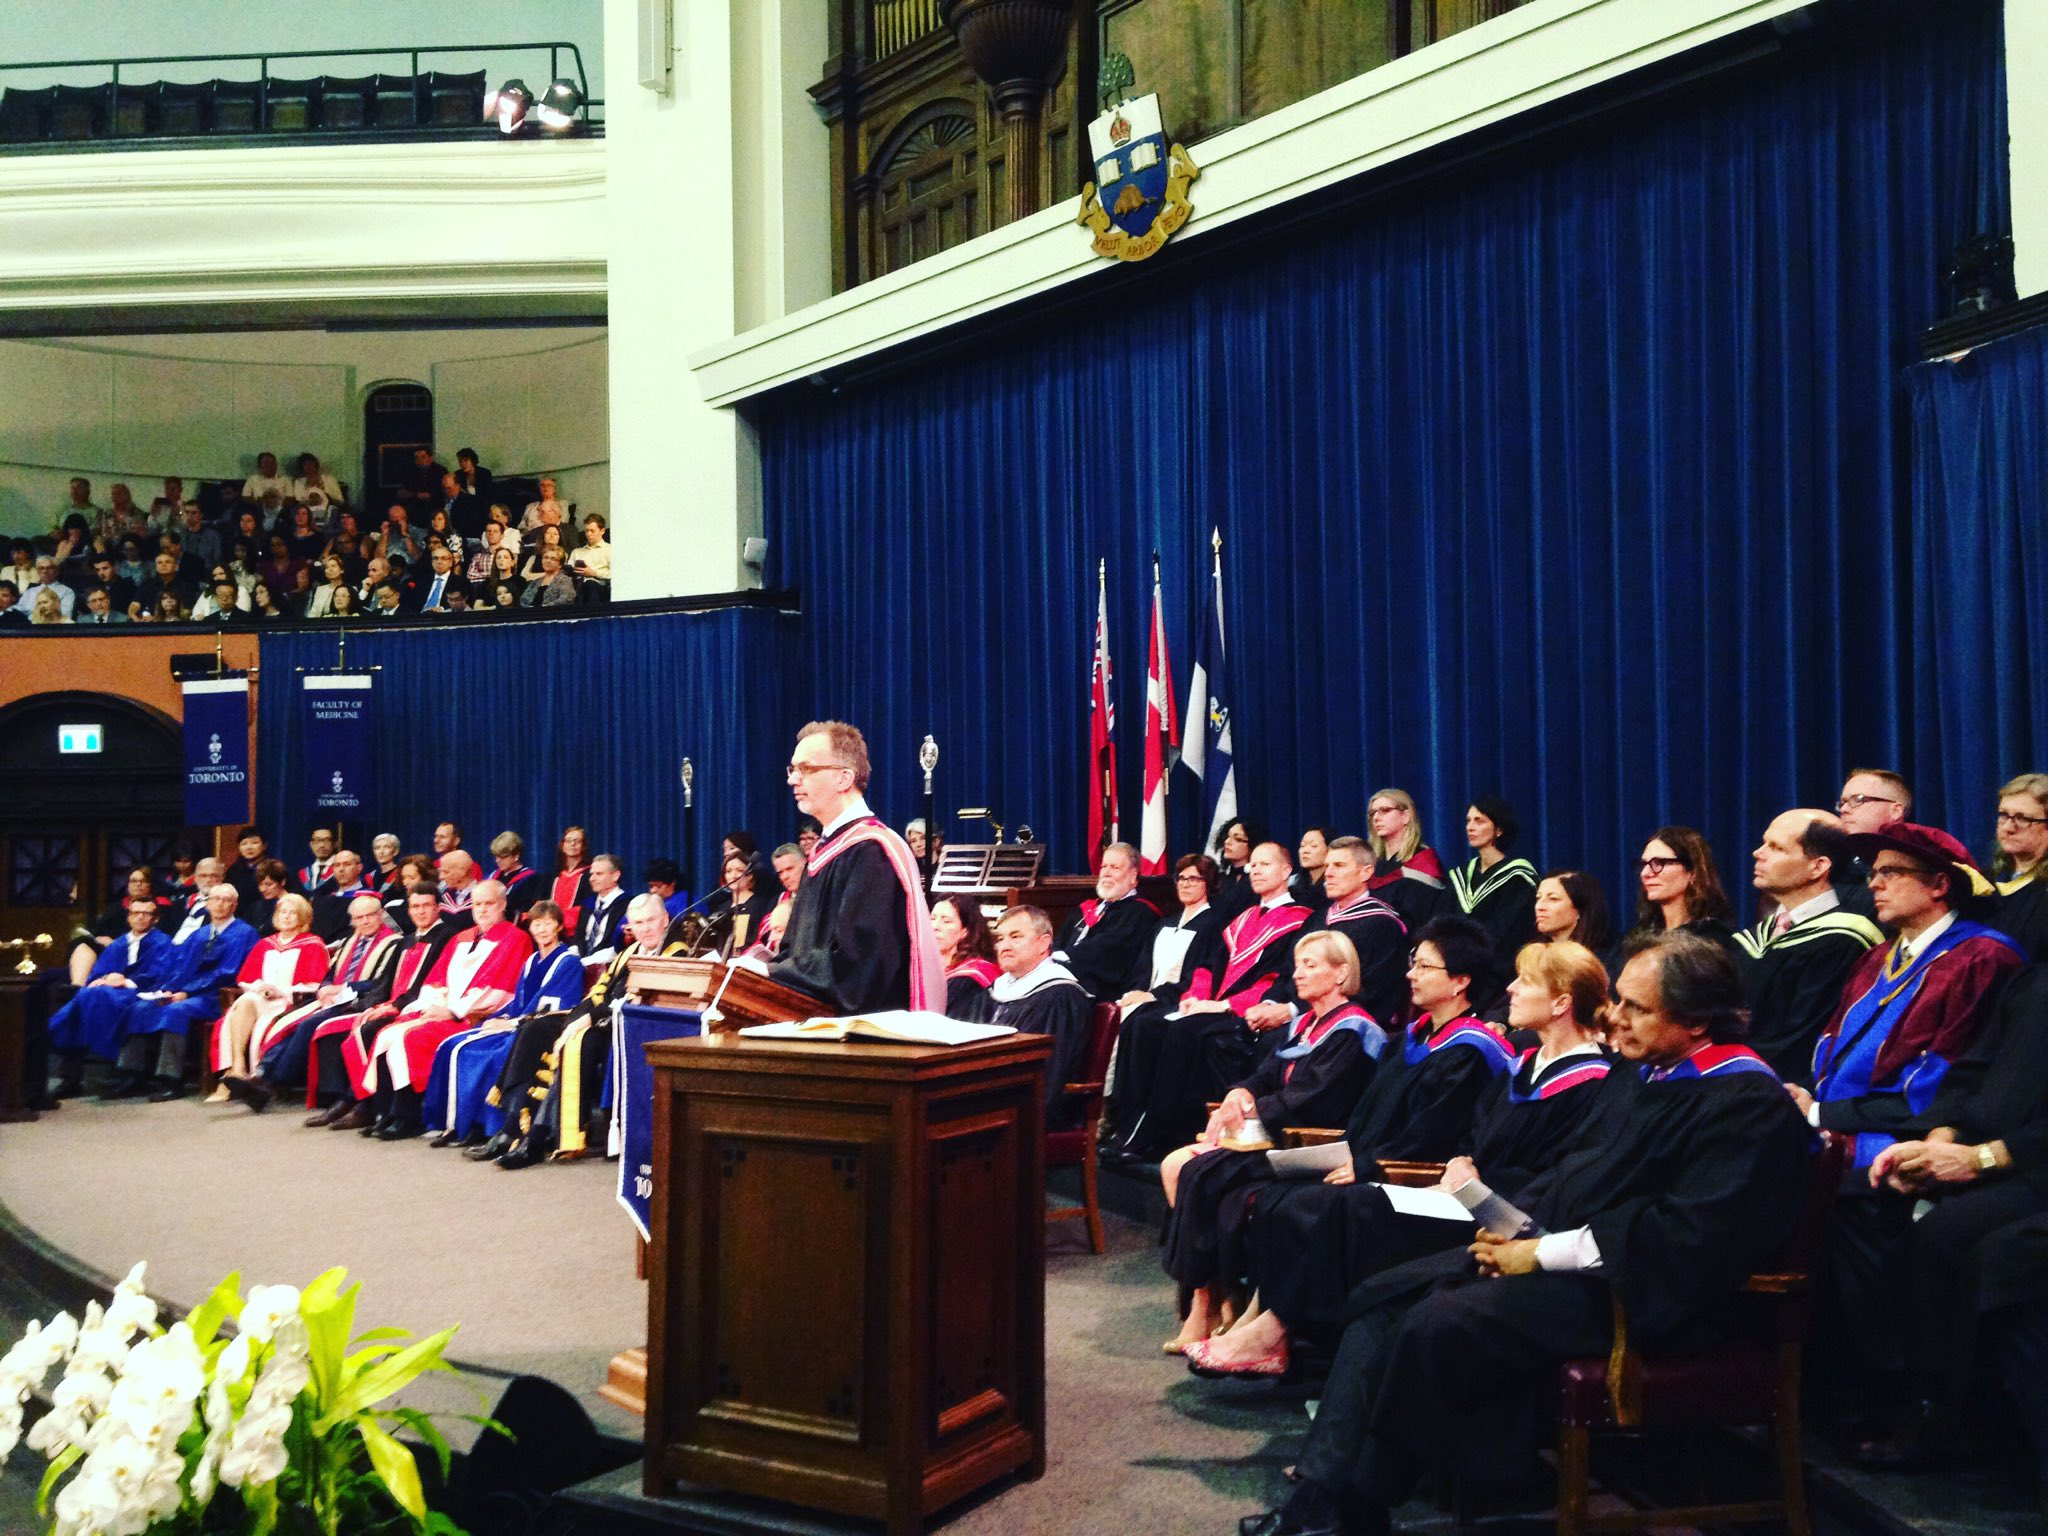 Class of 1T7, on behalf of our faculty, we are enormously proud of your achievements - @uoftmeddean #UofTMed #UofTGrad17 https://t.co/cNjhsCr0gQ